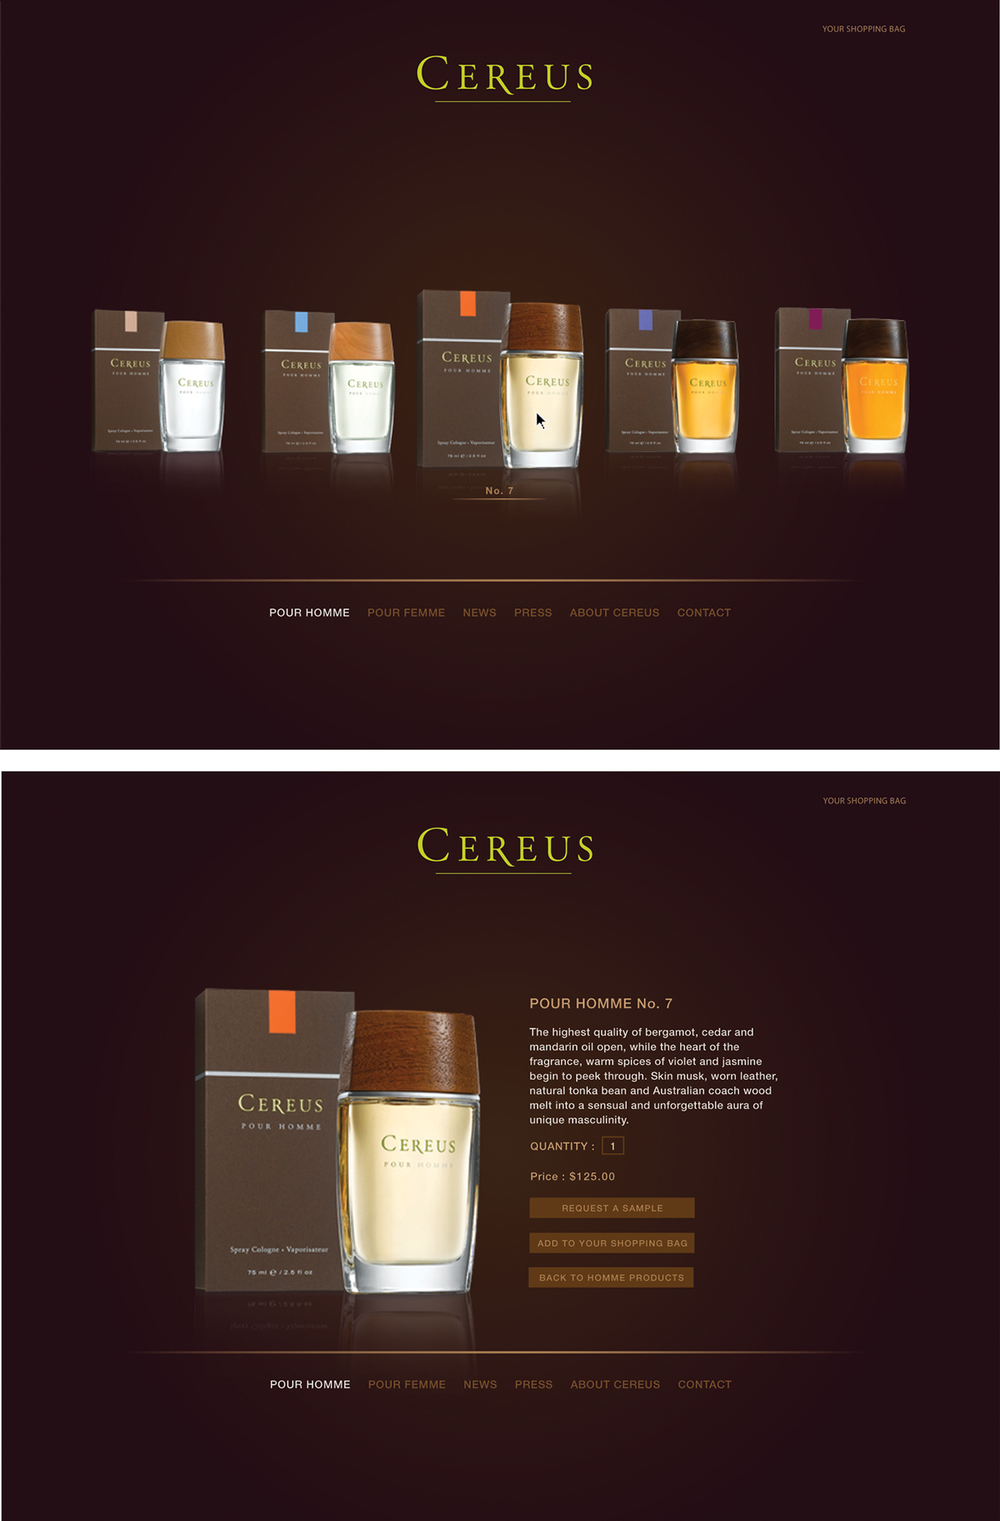 Cereus Website